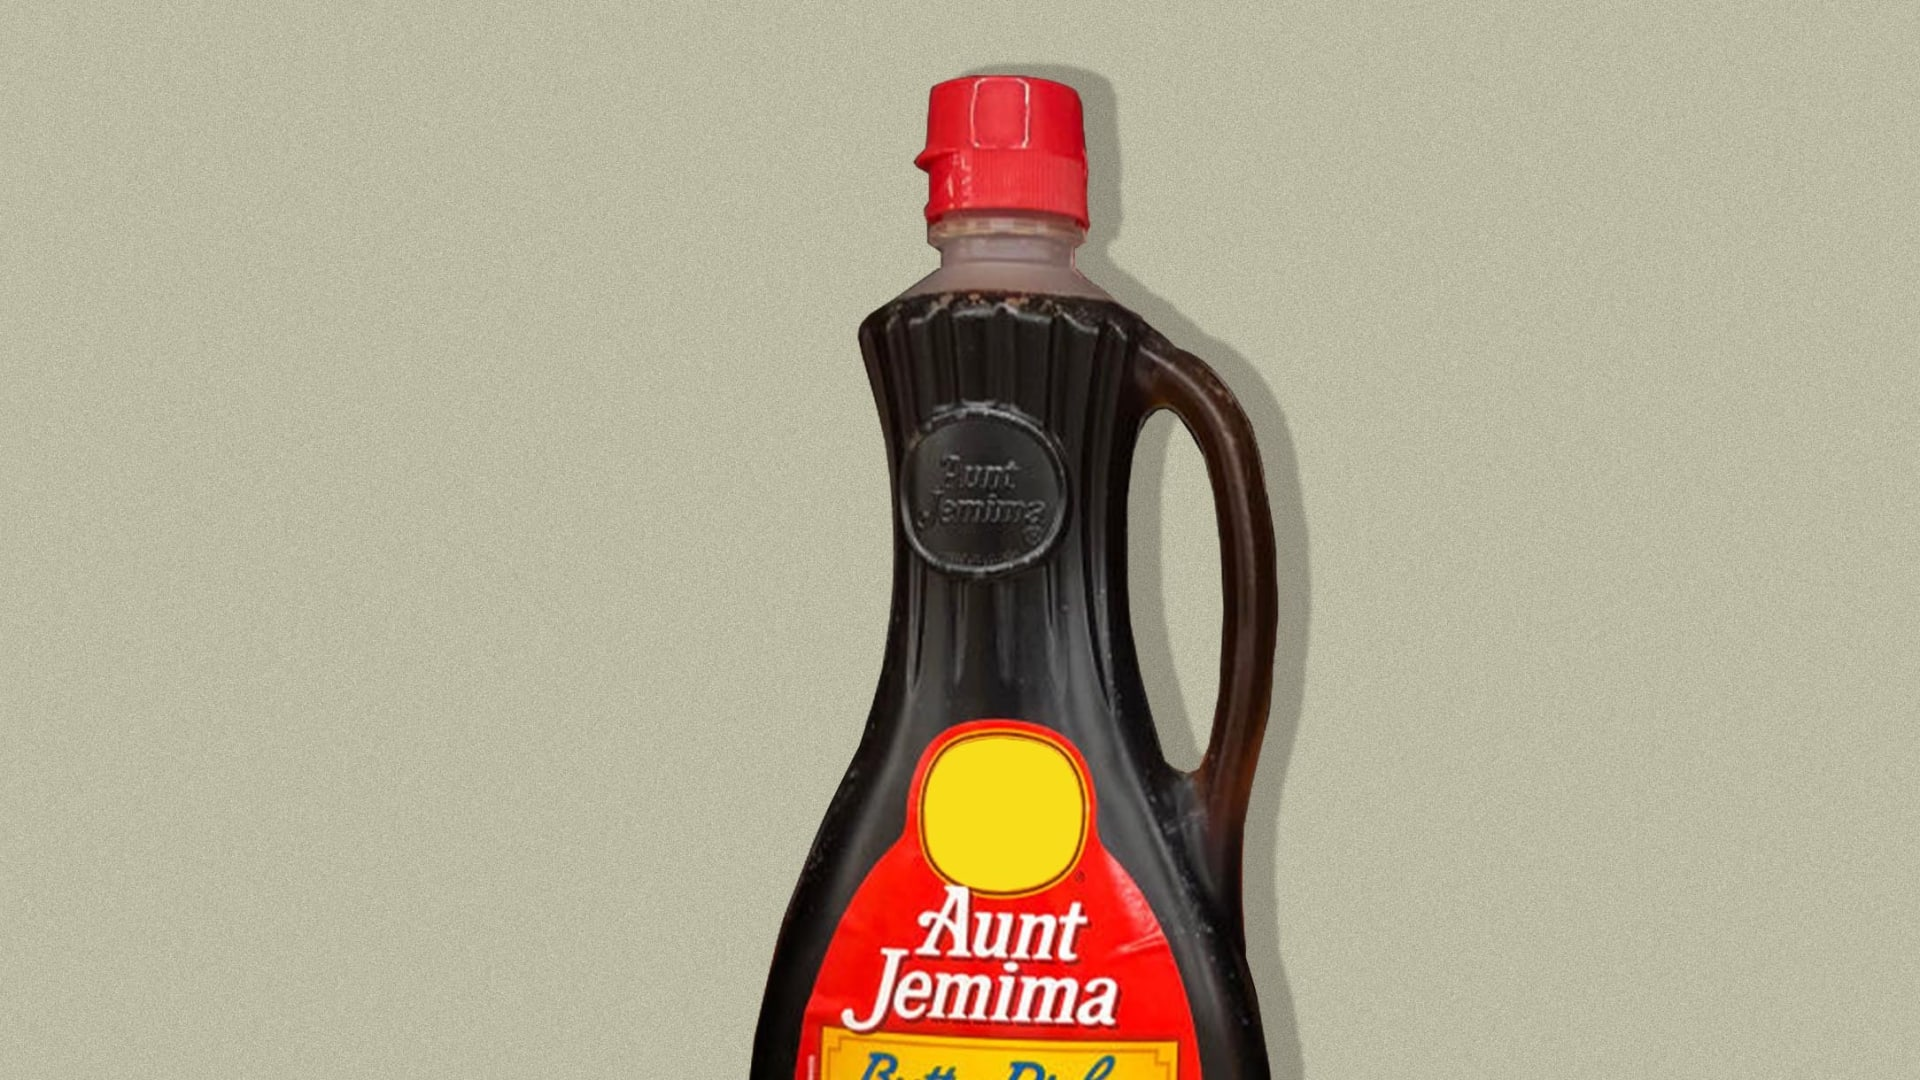 The End of Aunt Jemima and What Your Company Should Do